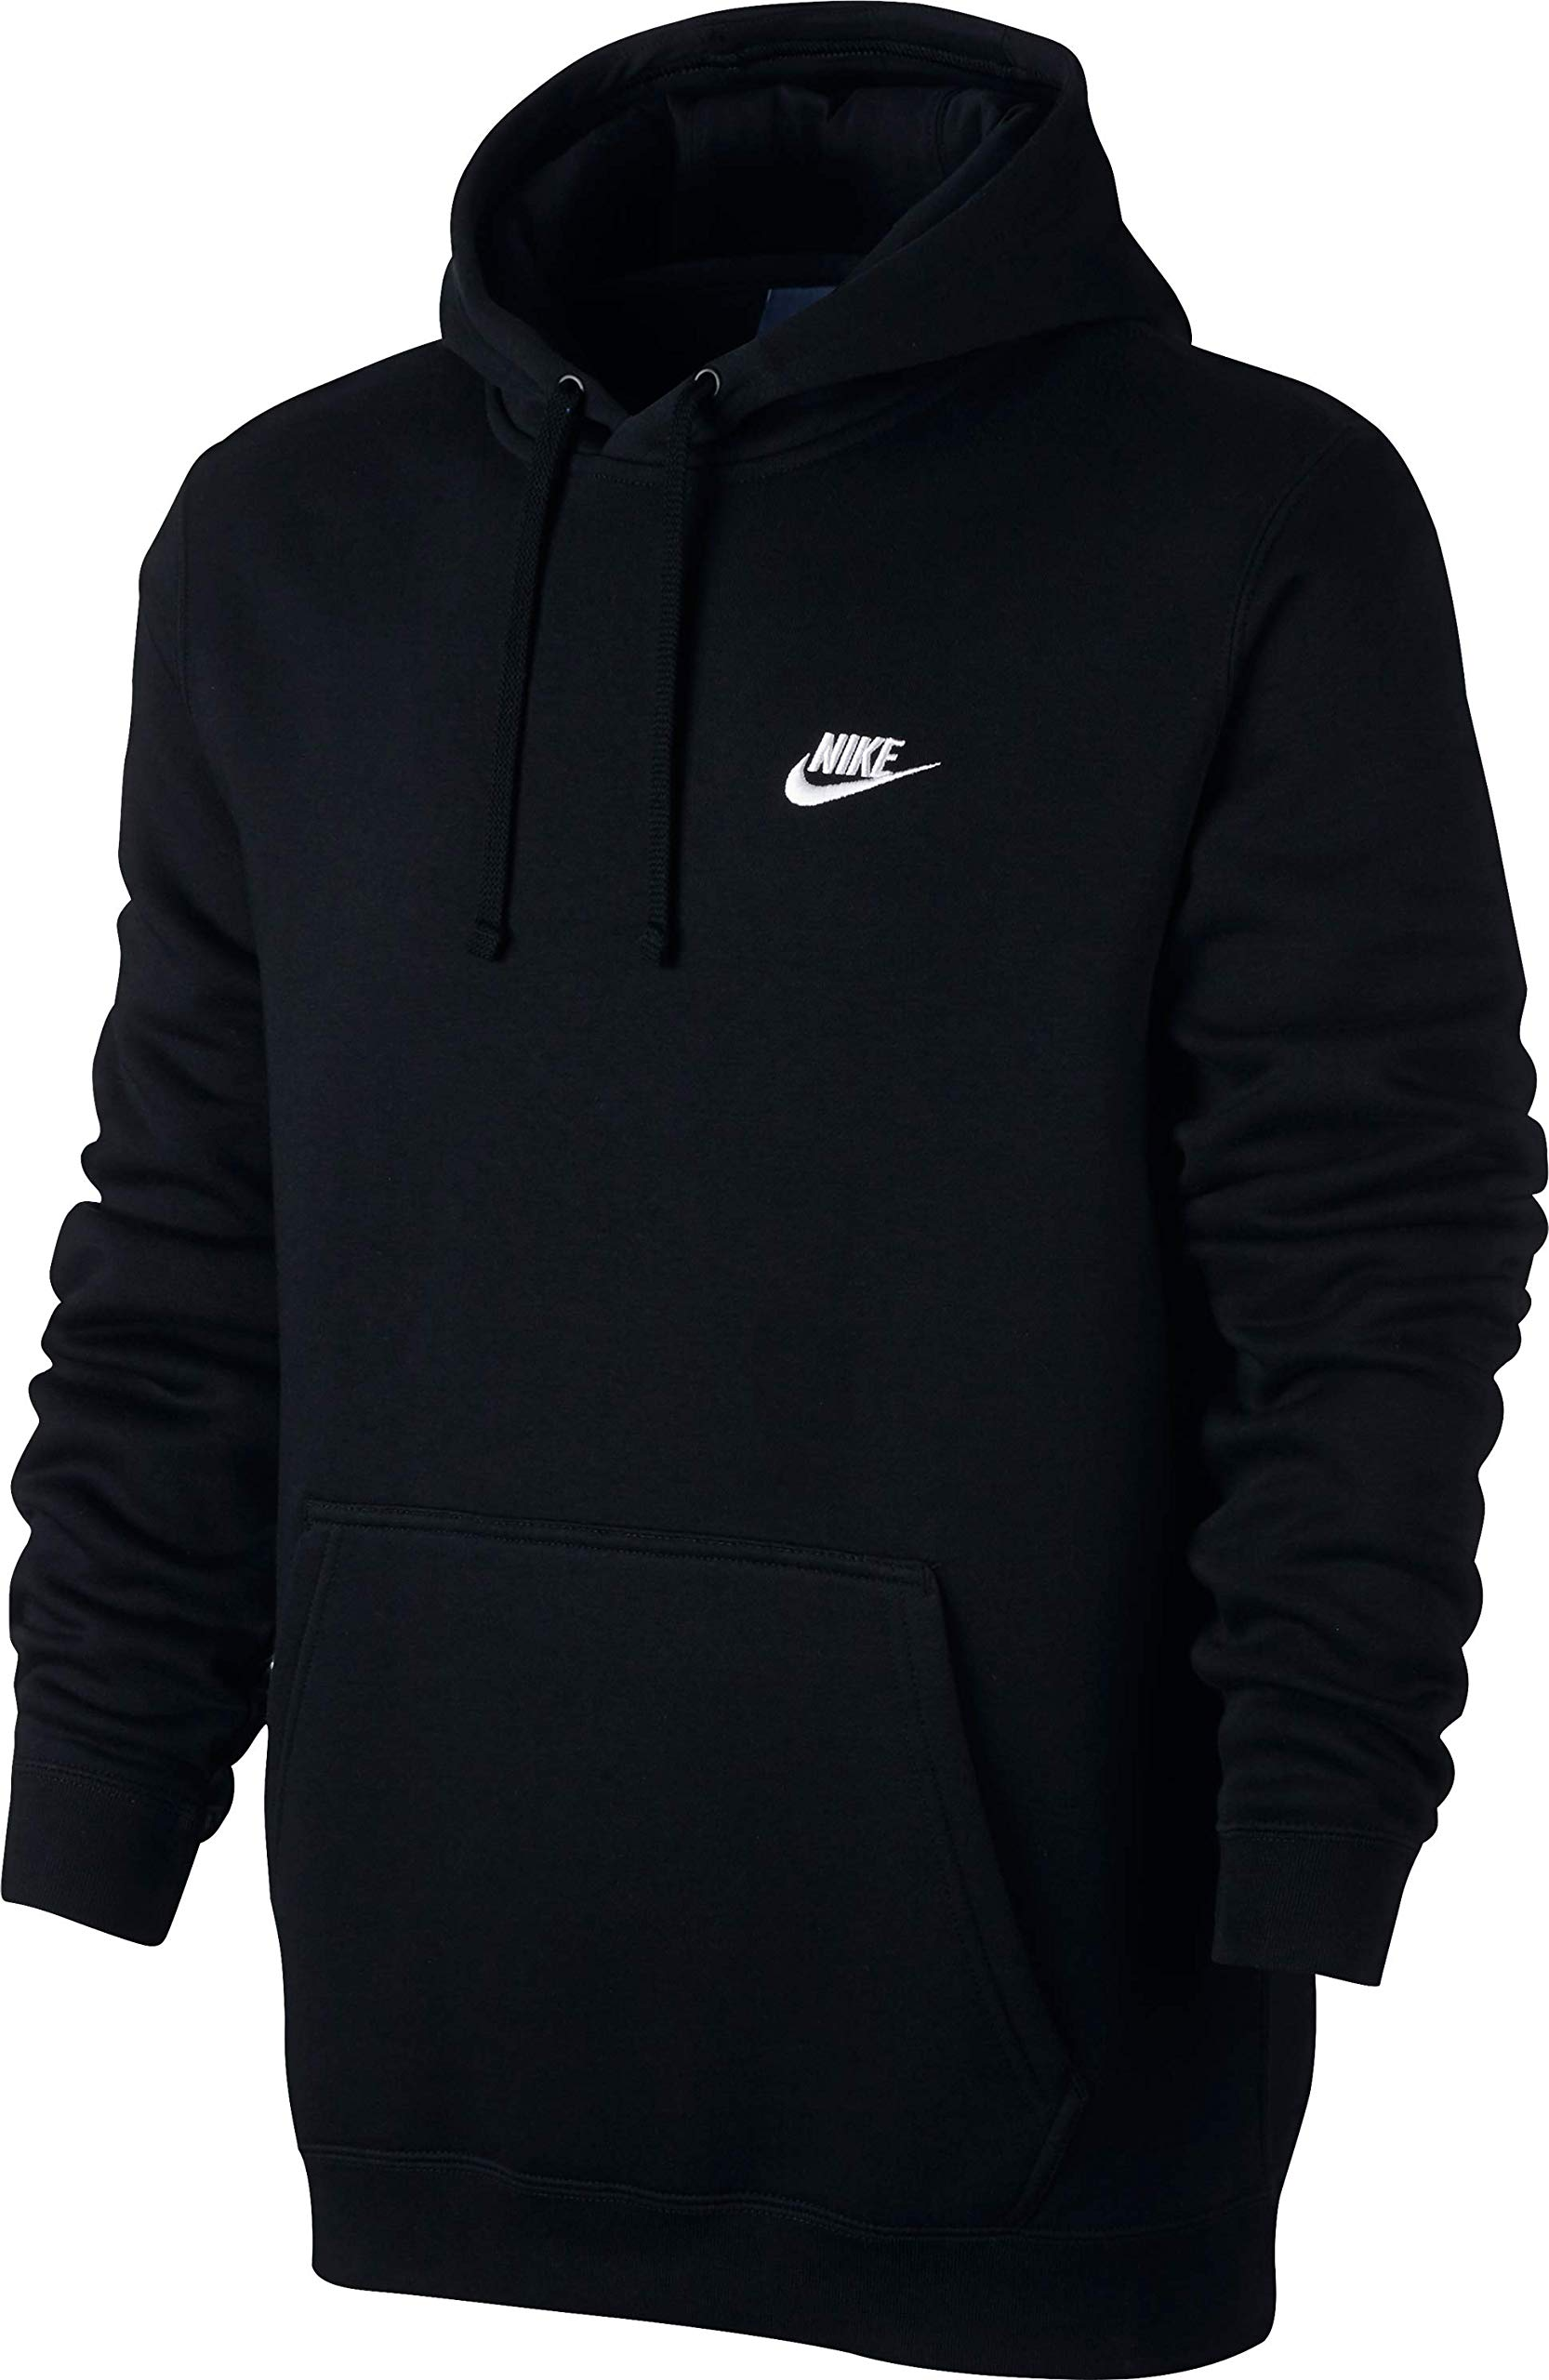 e57687cd Galleon - NIKE Sportswear Men's Pullover Club Hoodie, Black/Black/White, X- Large